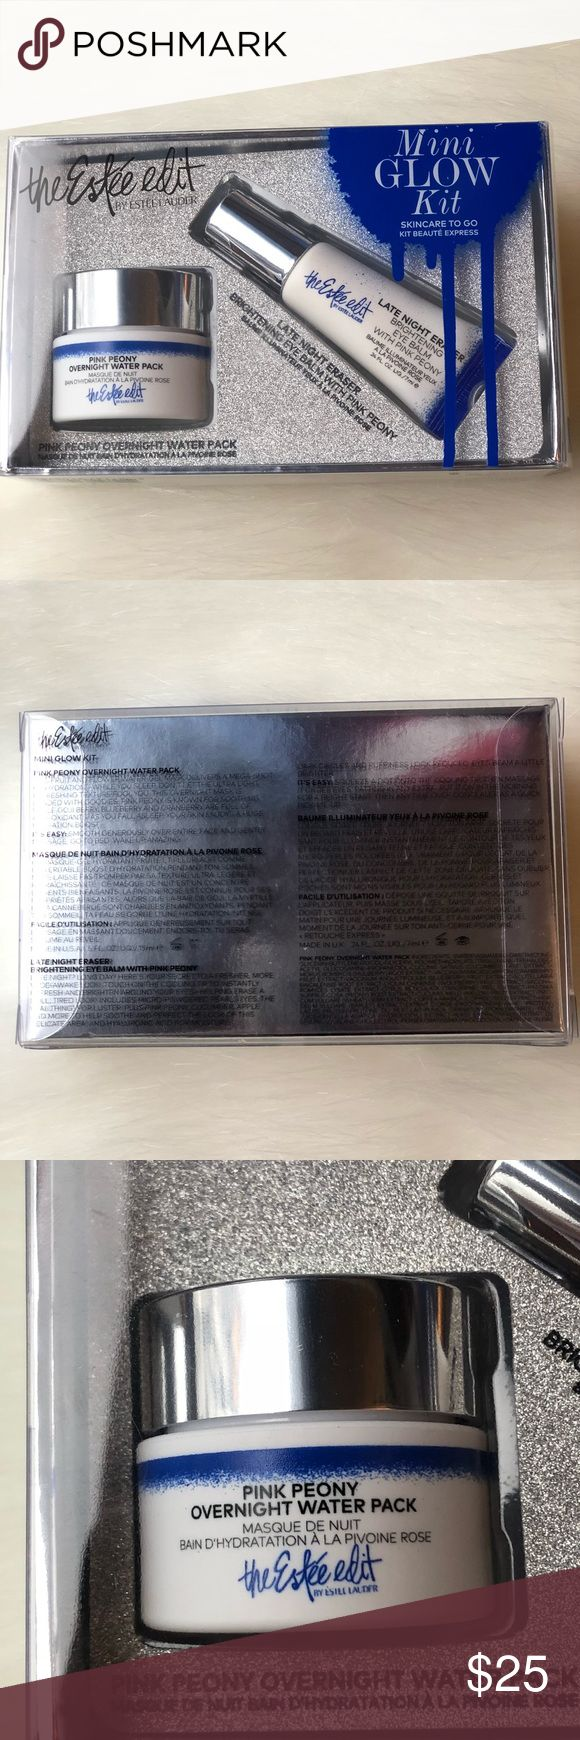 Estée Lauder The Estee Edit Mini Glow Kit ***BRAND NEW***  Estée Lauder The Estee Edit Mini Glow Kit  1 - Pink Peony Overnight Water Pack - 0.5 oz 1 - Late Night Eraser Brightening Eye Balm with Pink Peony - 0.24 oz  *Dermatologist-tested, non-acnegenic. *New in Silver Shiny Gift Box  ~Authentic ~ Please do not ask lowest or submit an offer in the comment ~ I accept offer through offer button only  ~ Please be respectful when submit an offer ~ No modeling, no trades, & no hold Estee Lauder…